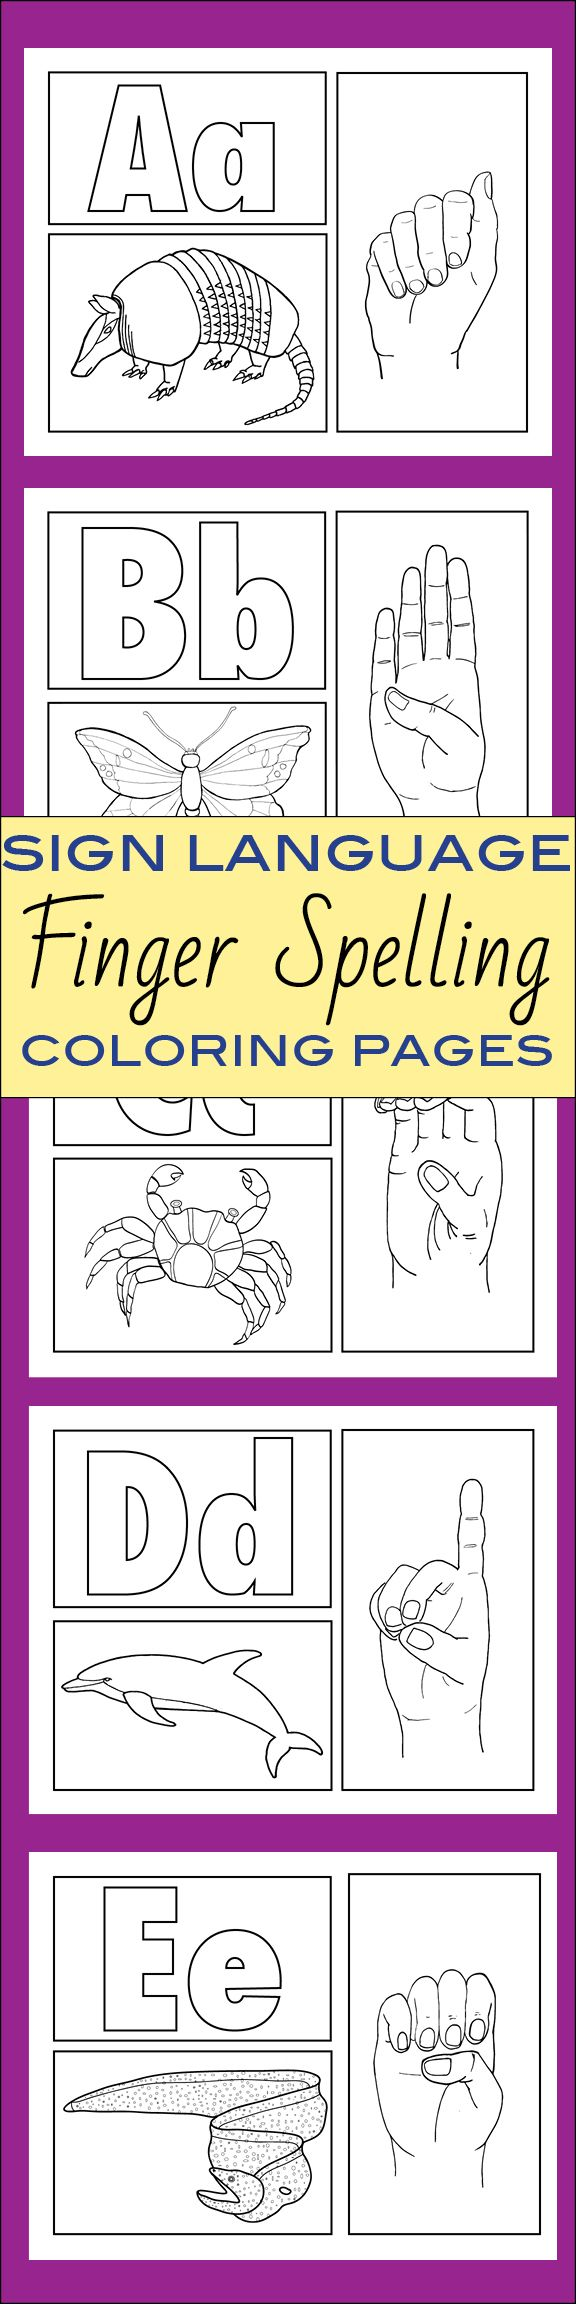 Sign Language Alphabet ABCs Coloring Sheets and Room